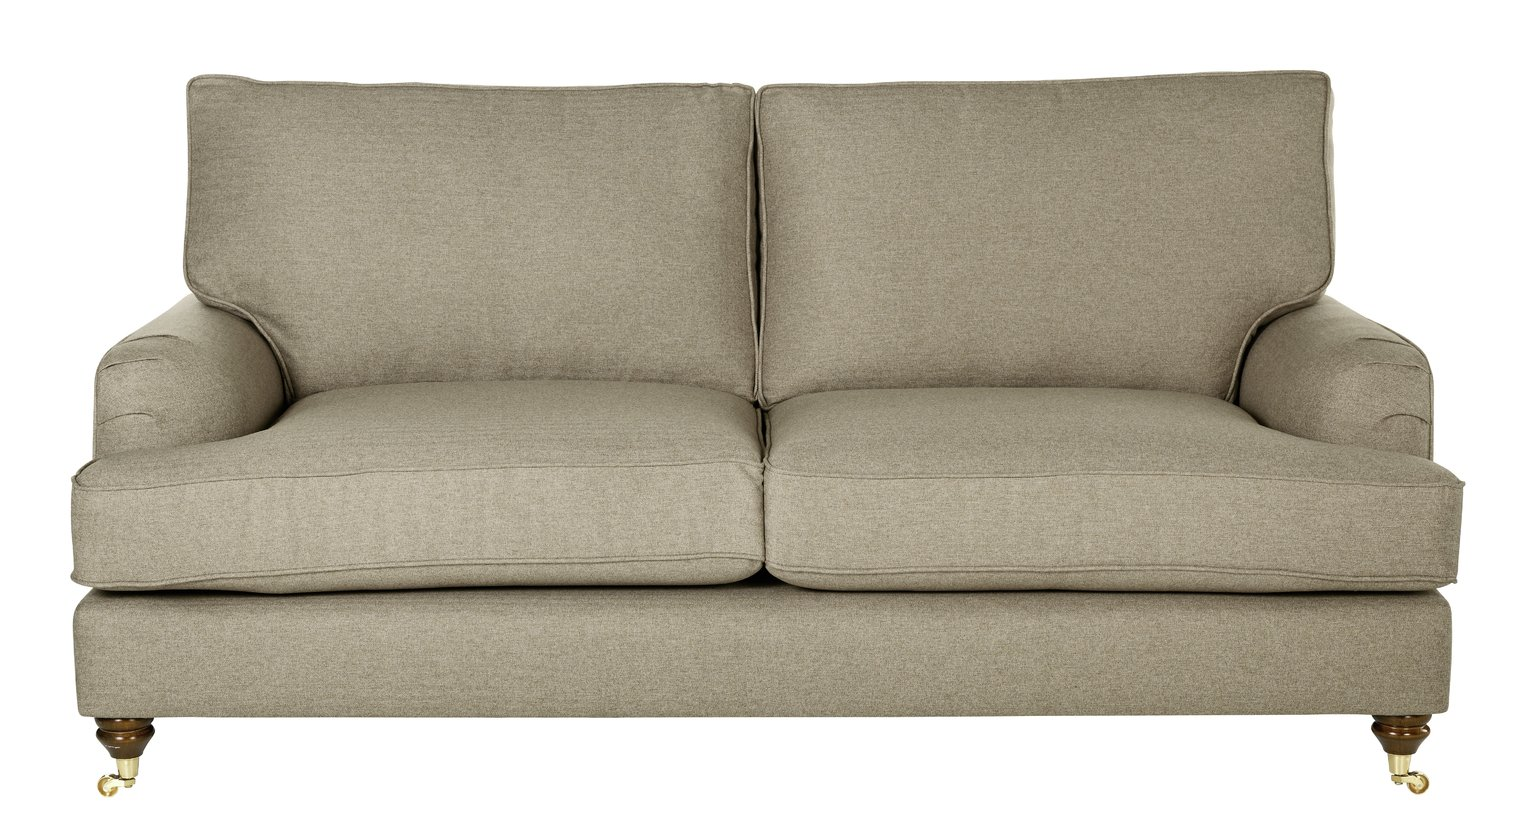 Image of Heart of House Abberton 3 Seater Sofa - Natural Tweed